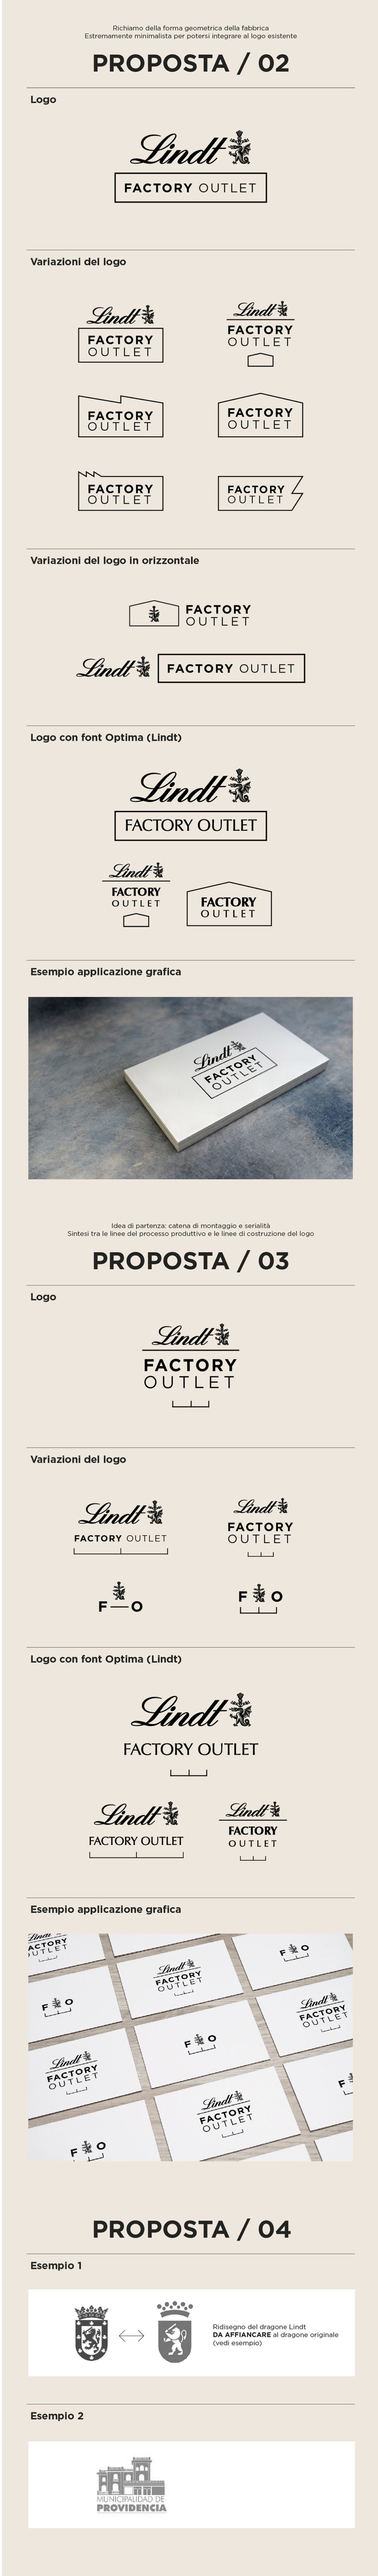 Factory-Outlet-1-2